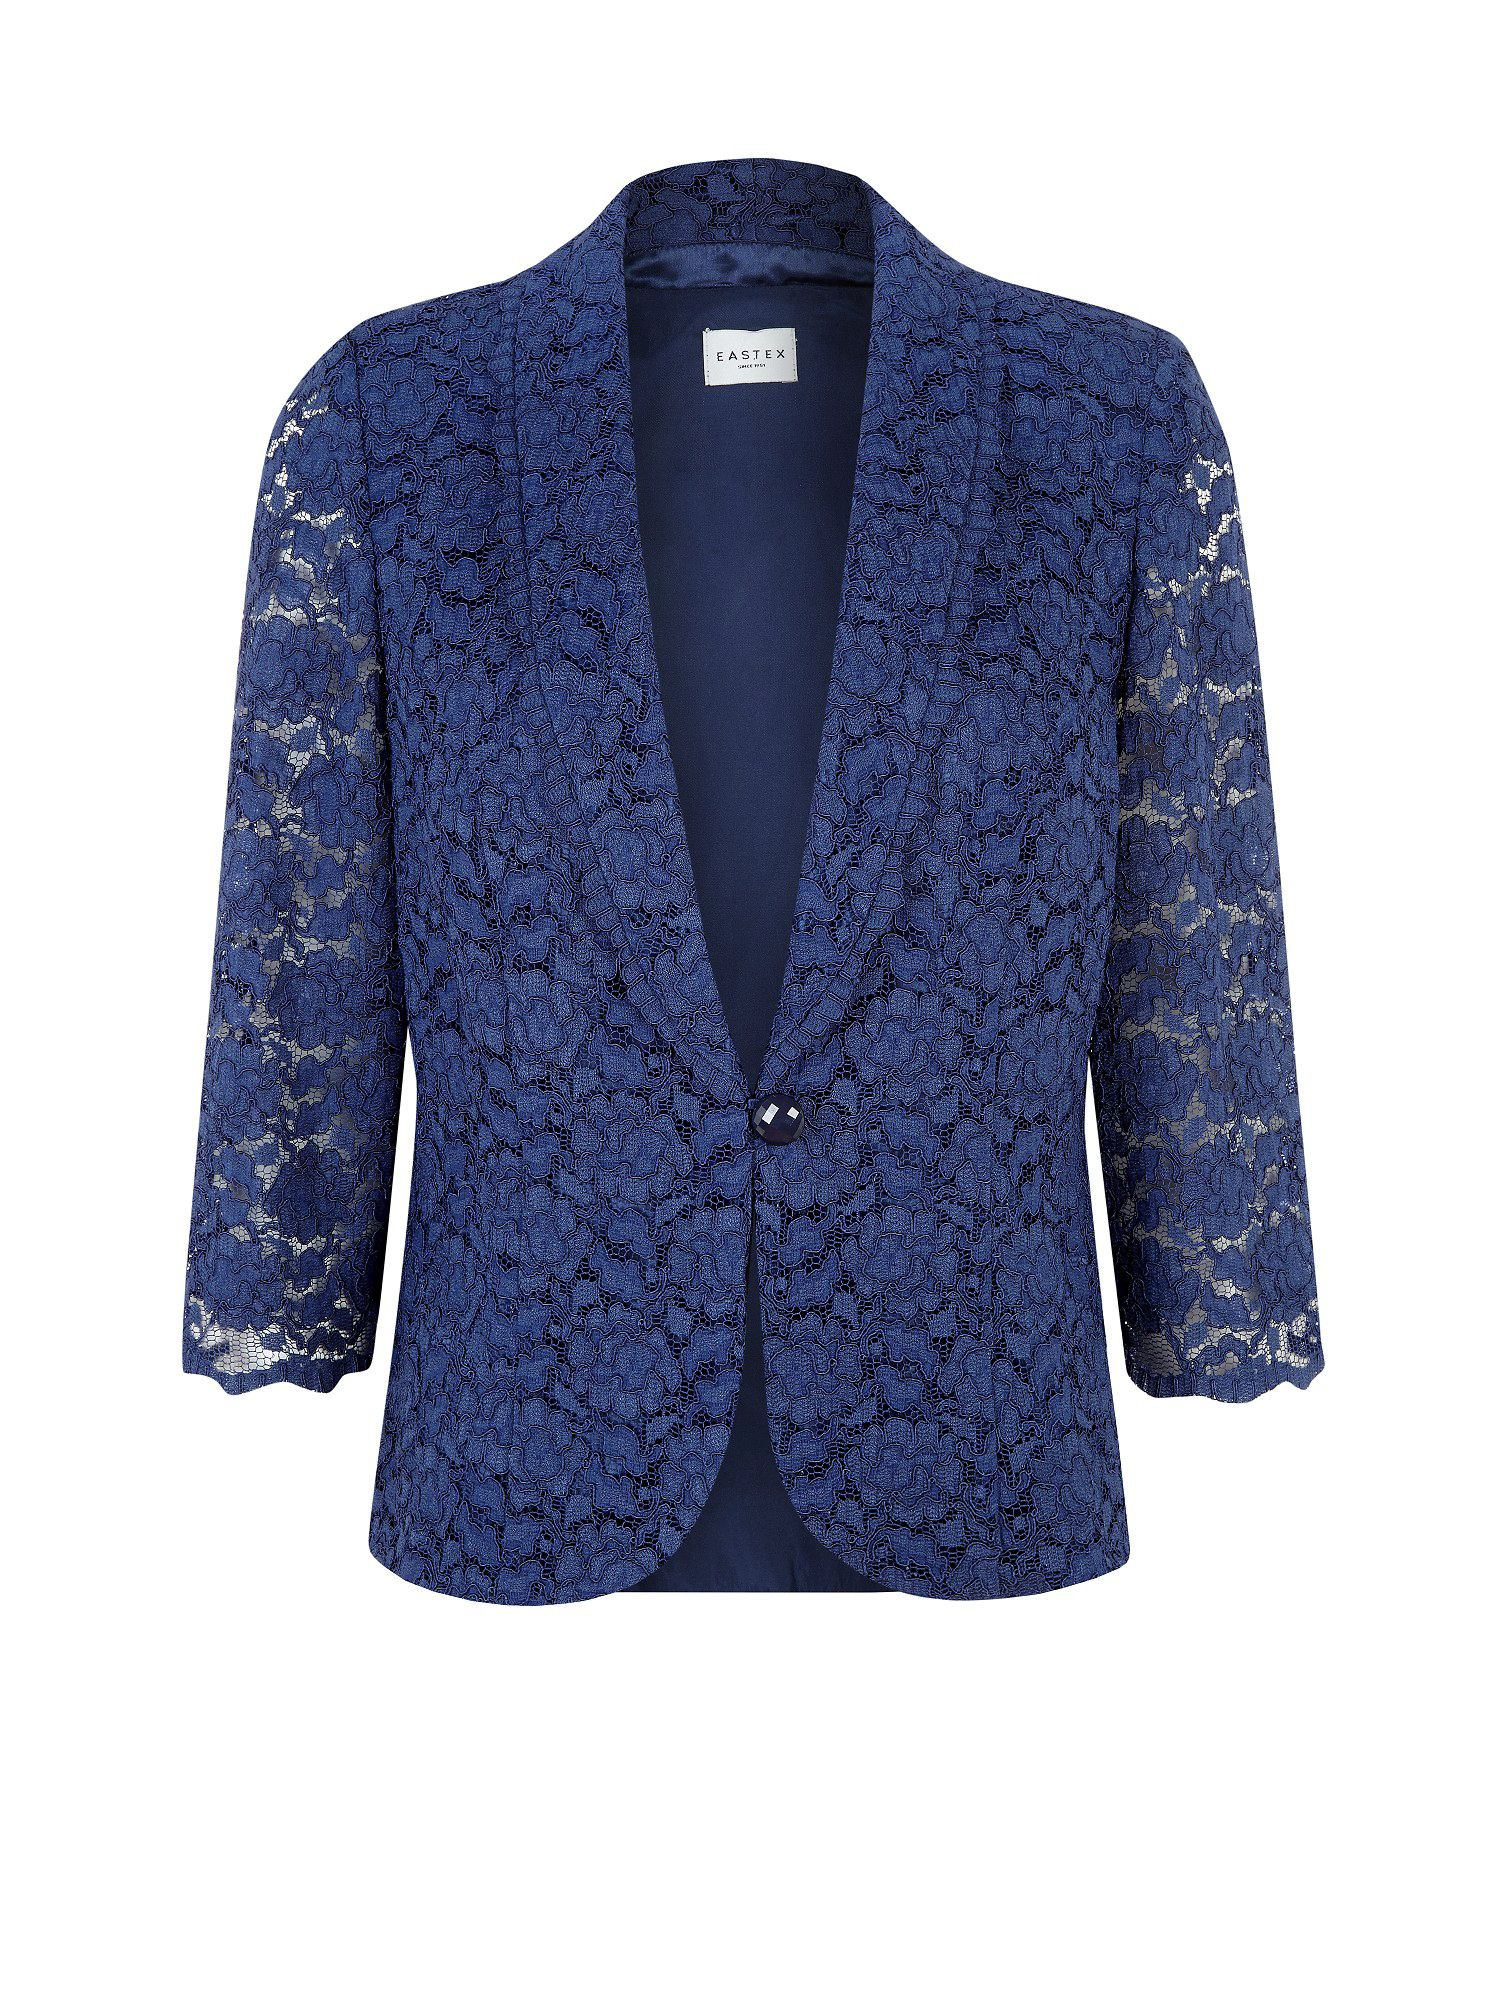 Eastex Navy Lace Tailored Jacket in Blue